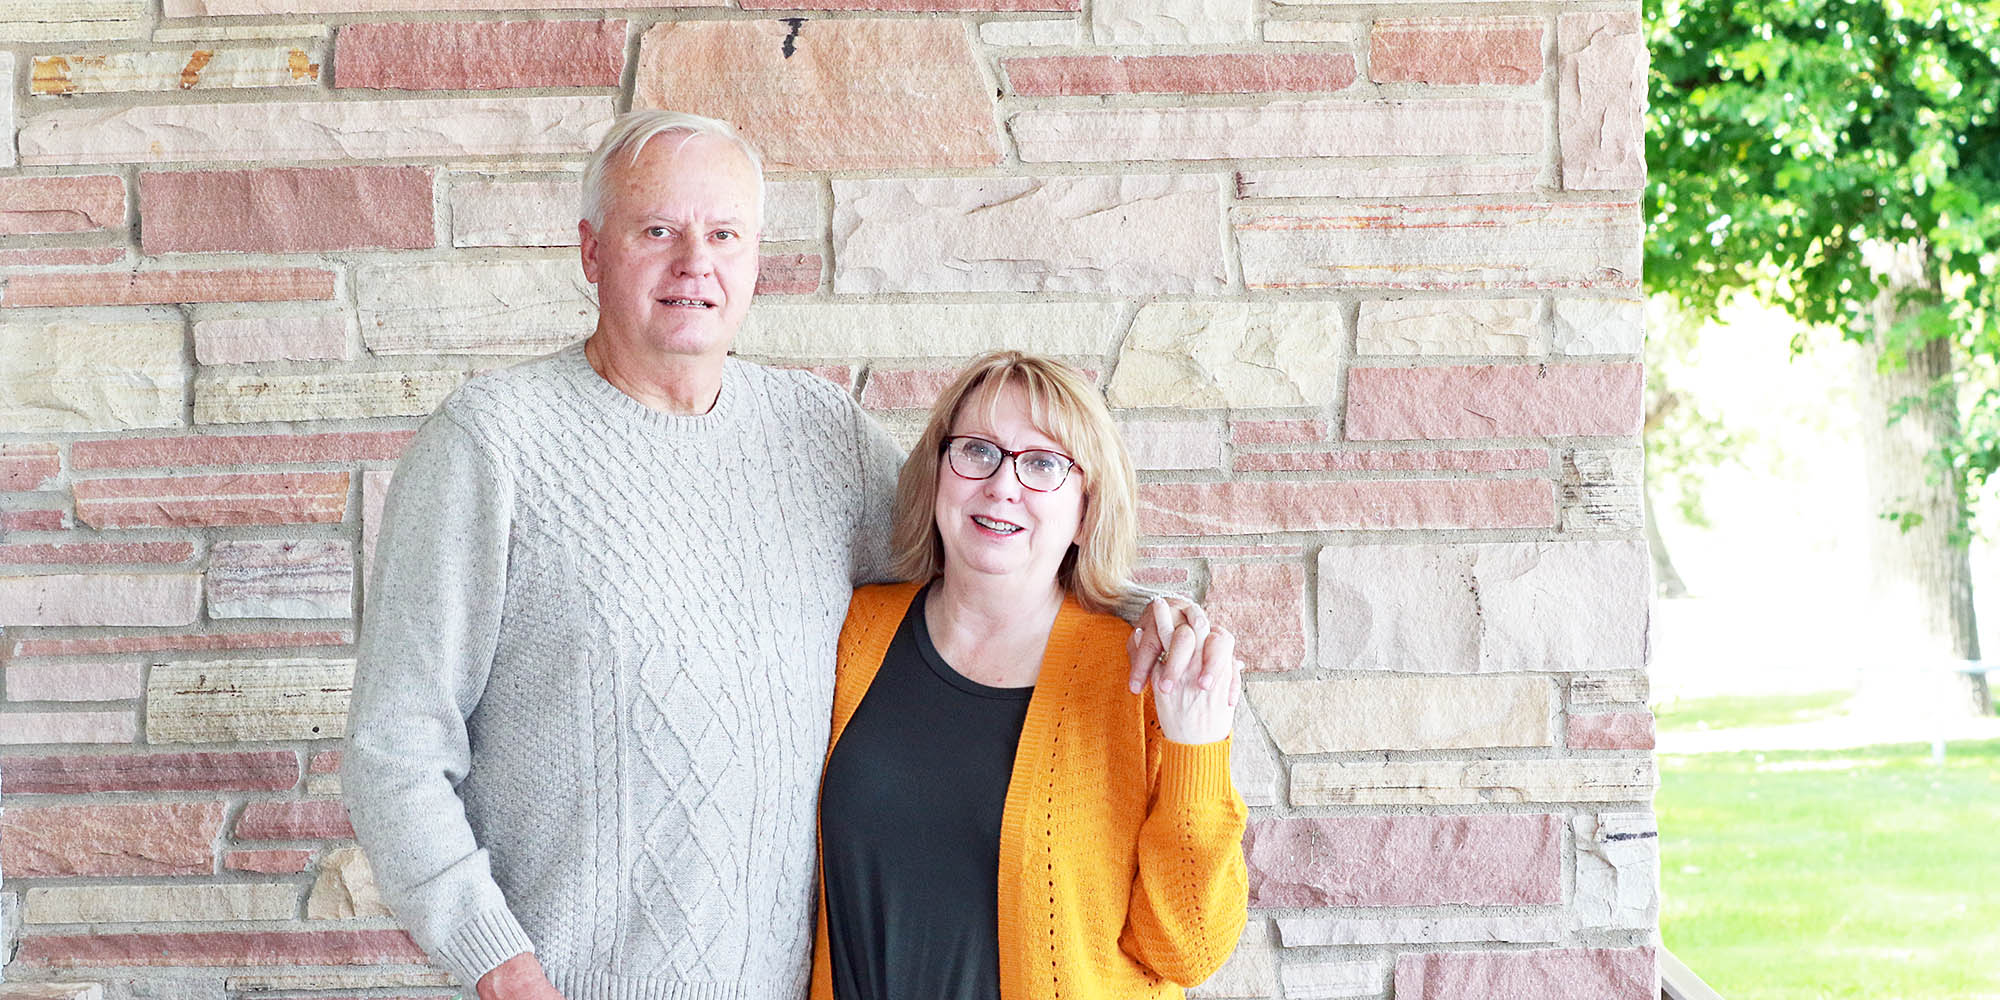 Jesse and Sandy Pape hold hands as they pose in front of a Colorado sandstone building.